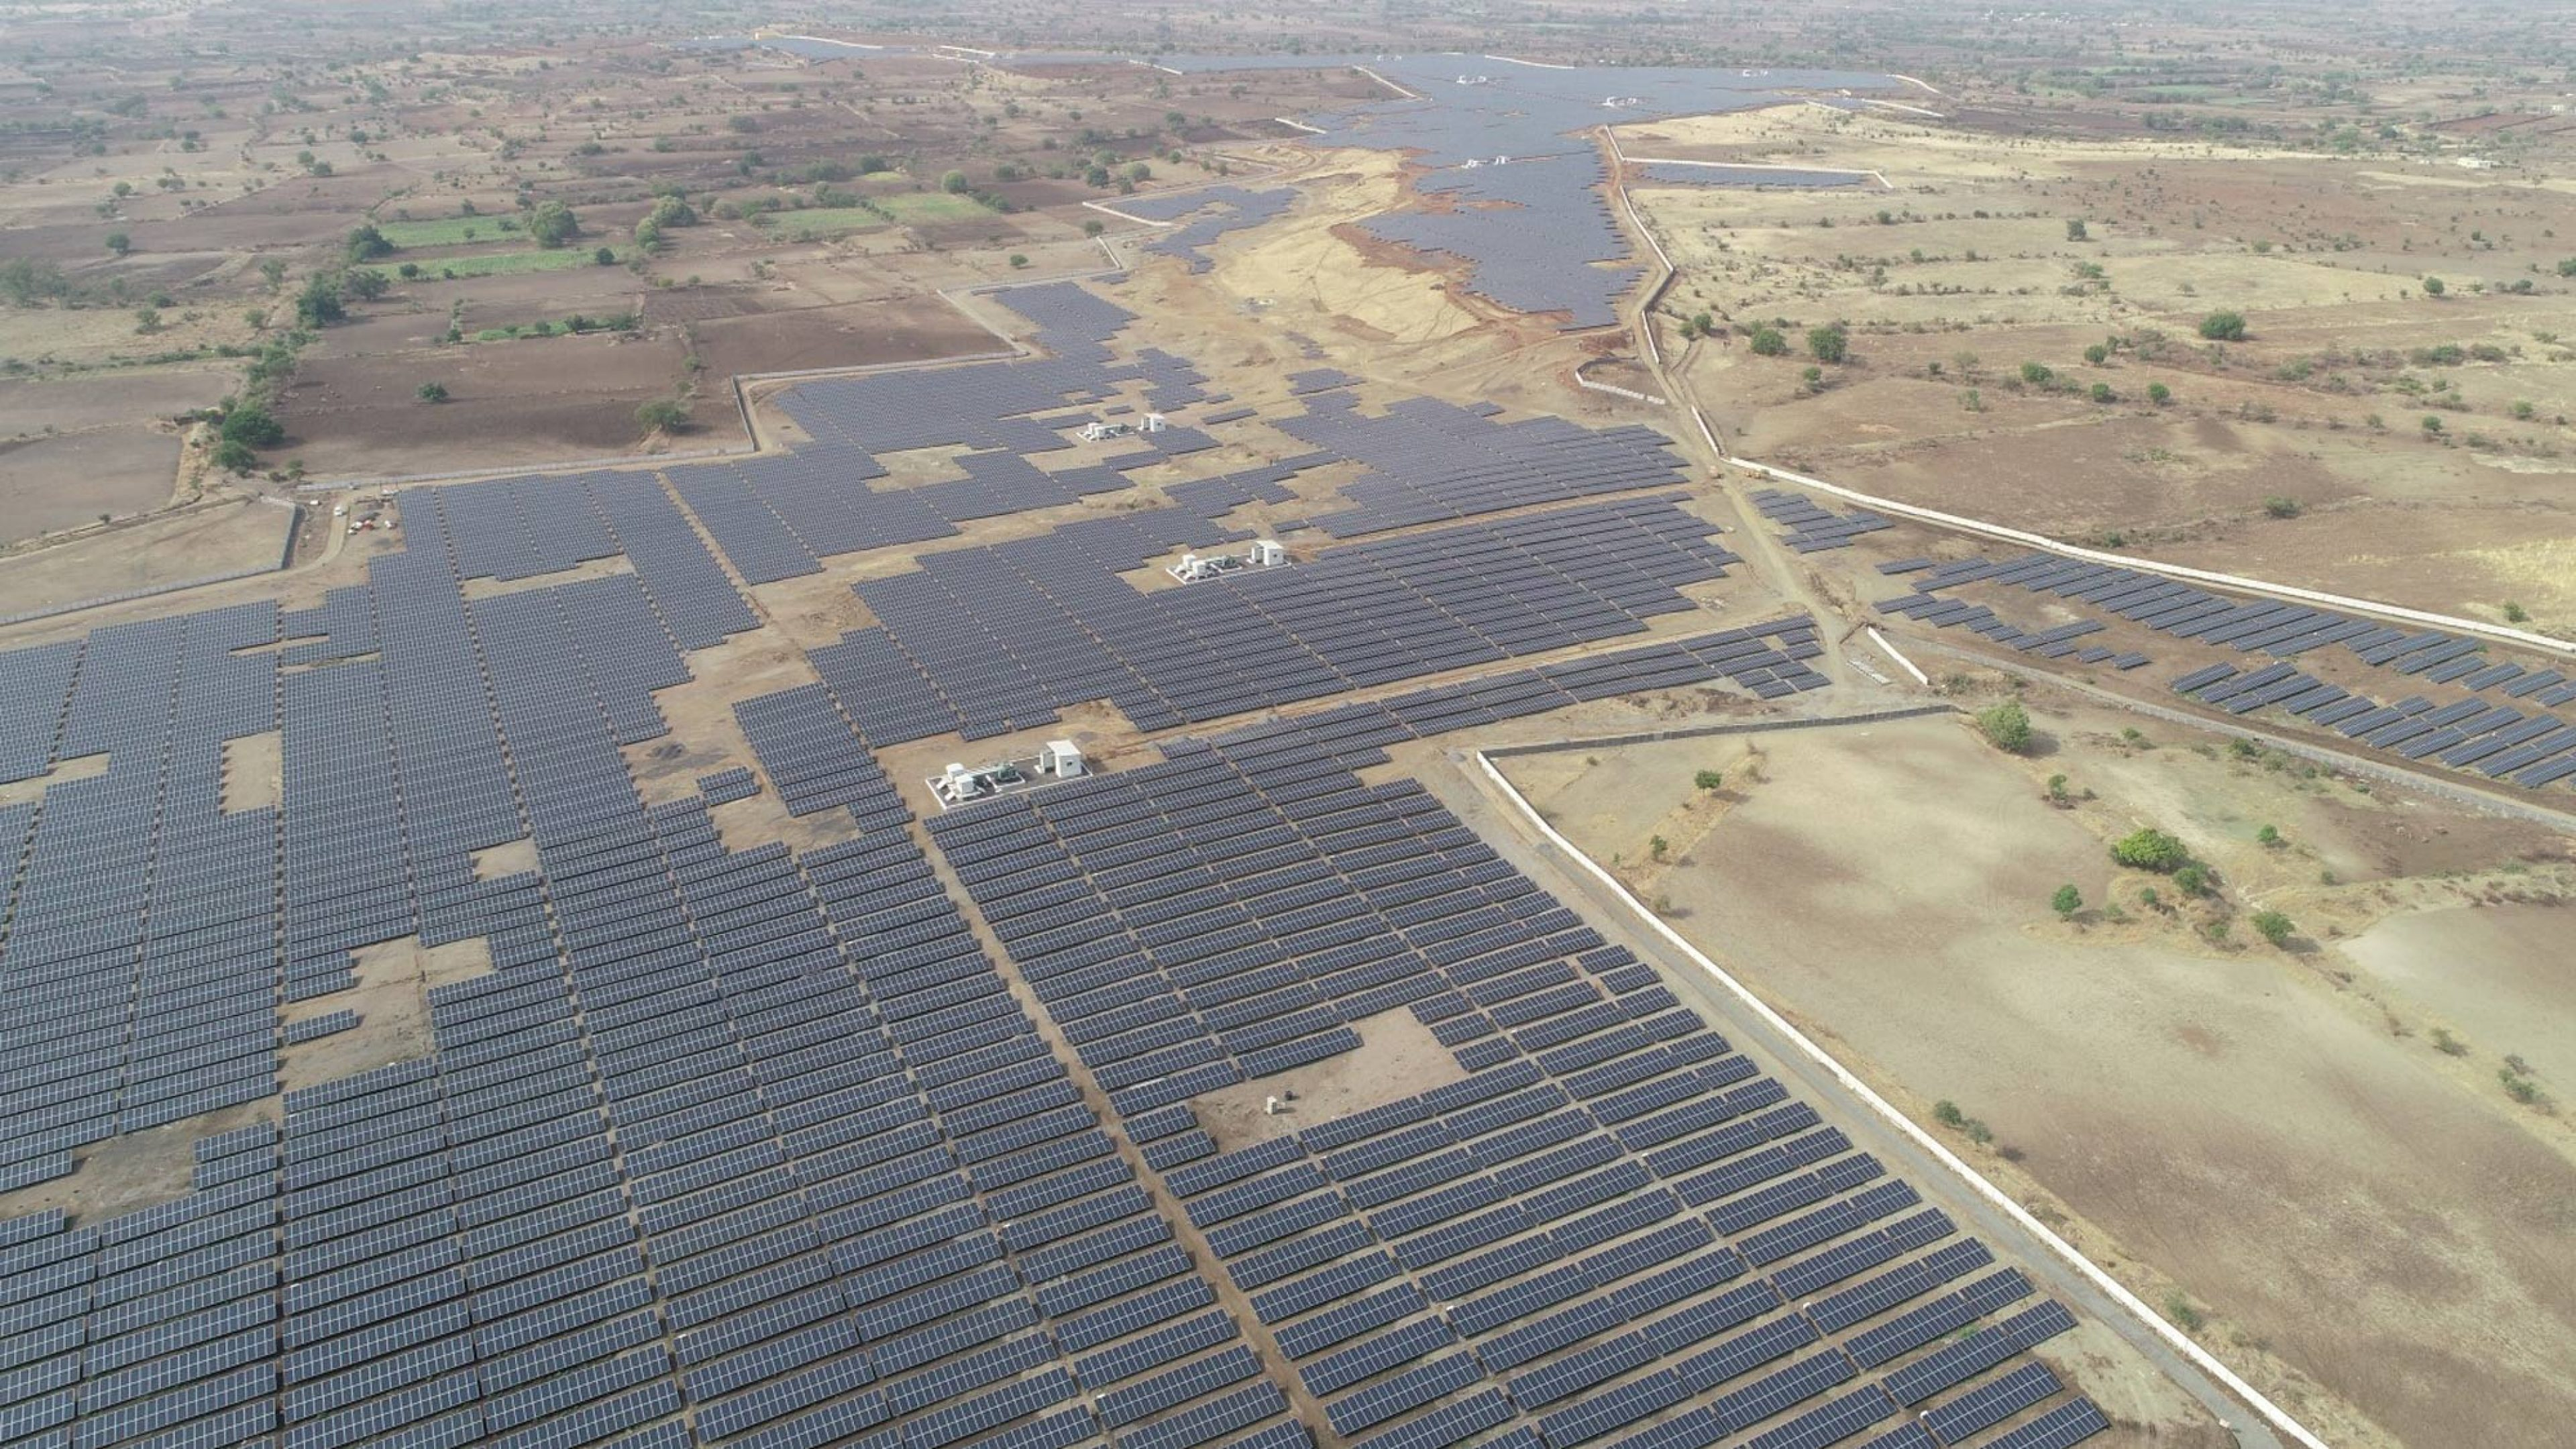 Solar farm in Maharashtra, India